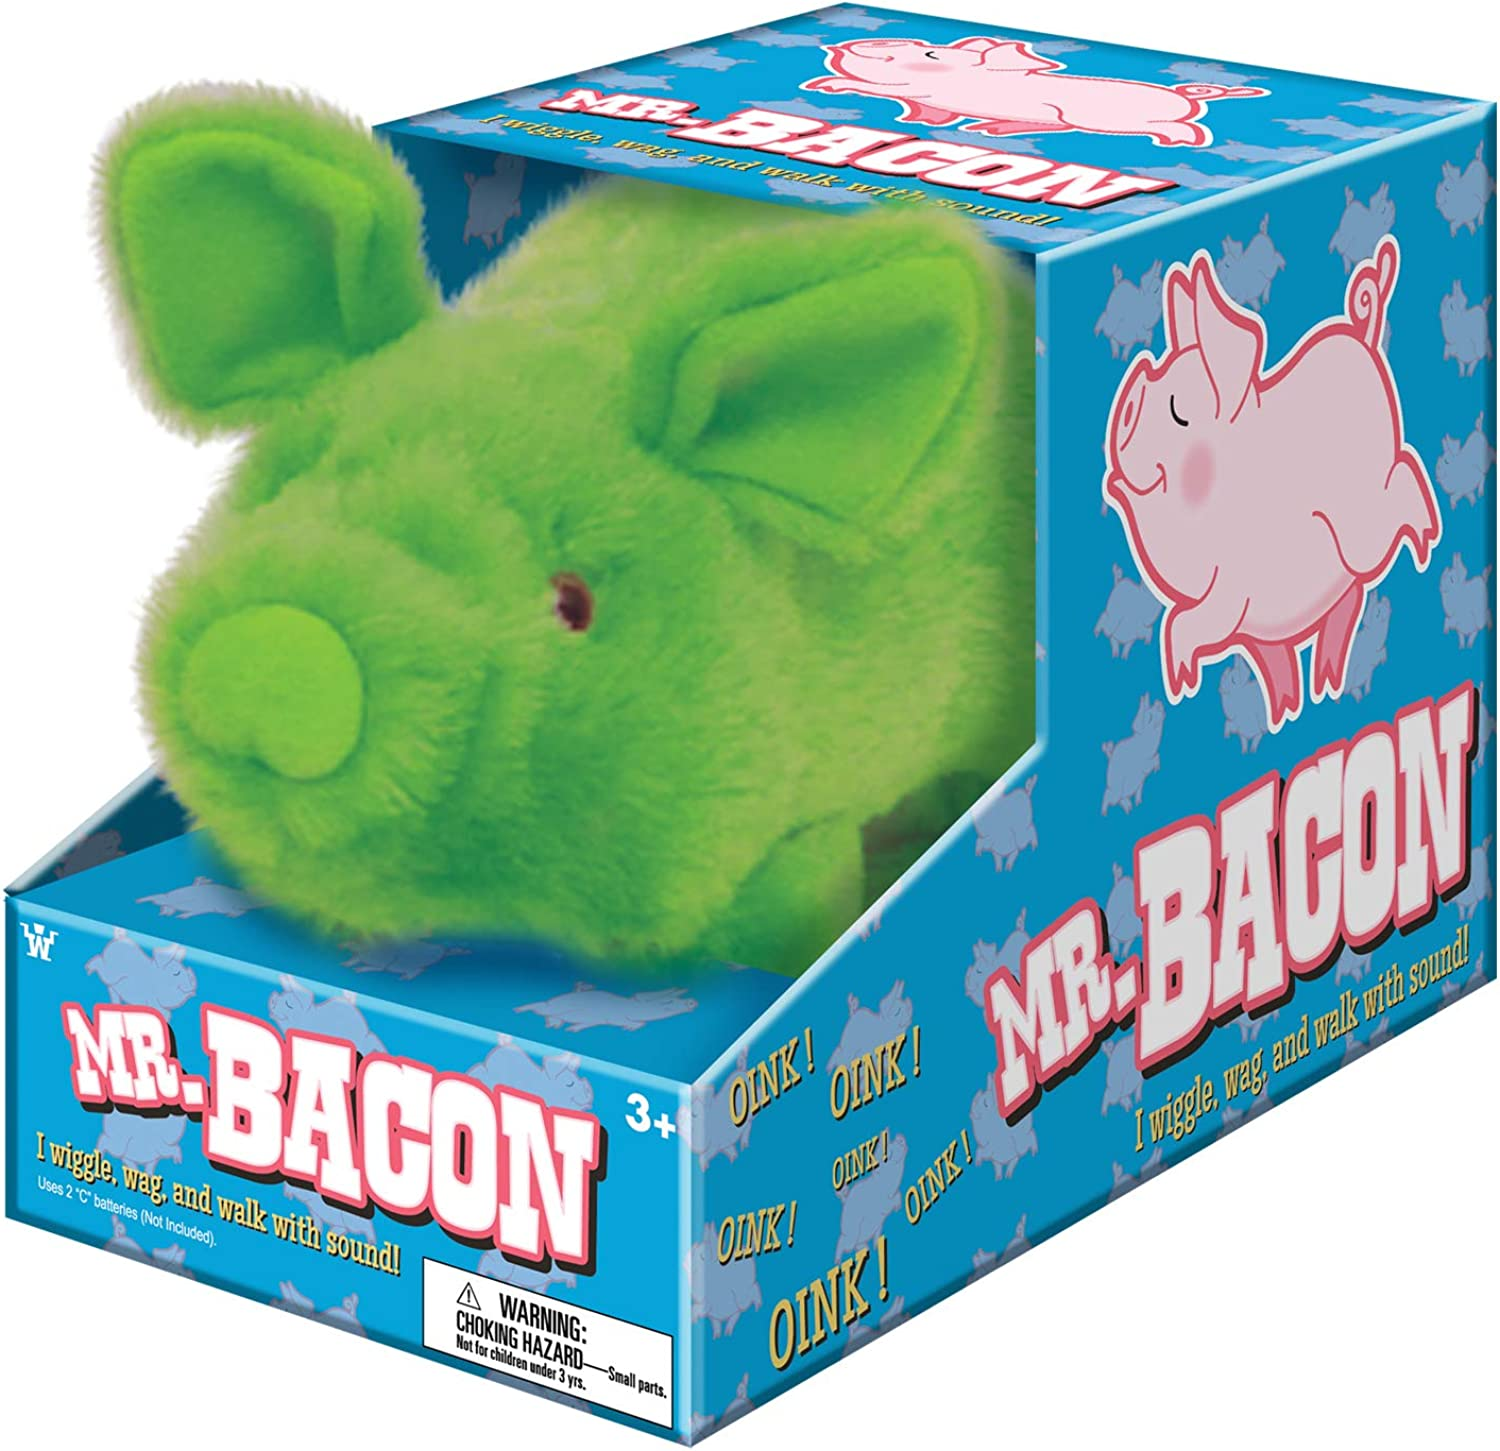 Westminster Toys Mr Bacon Walking Pig w  Sound  PURPLE